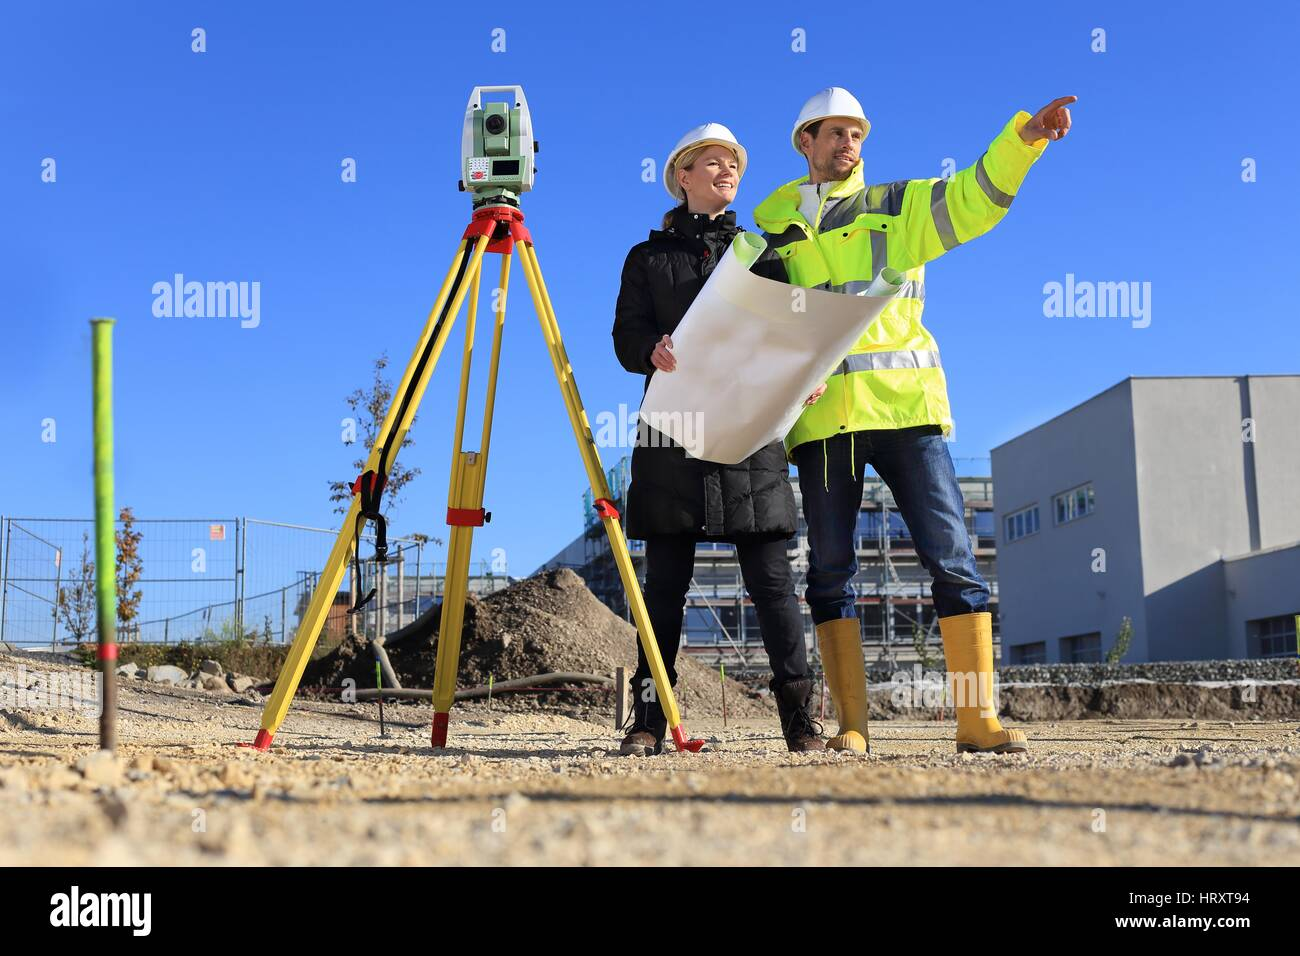 A Female Architect and surveyor on a construction site - Stock Image